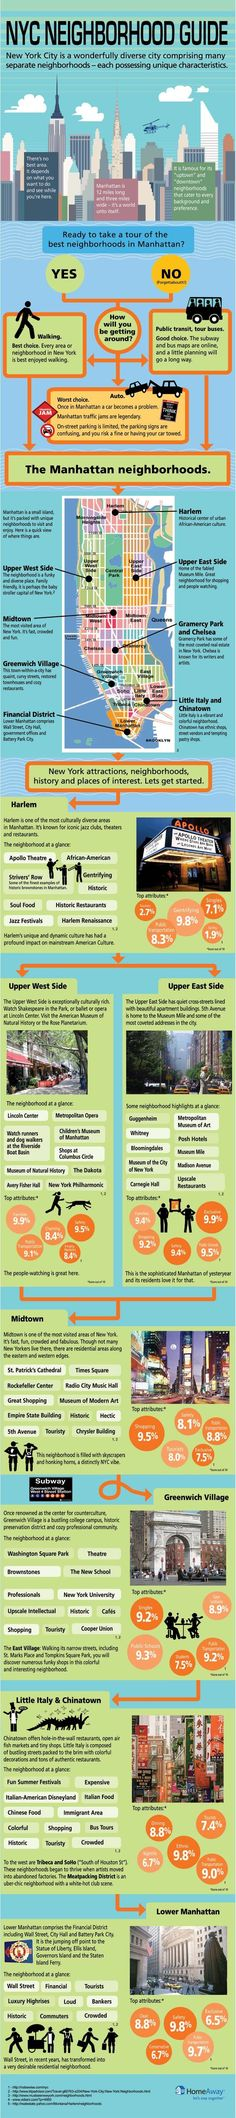 NYC Neighborhood Guide Infographic. Check out what the locals do.